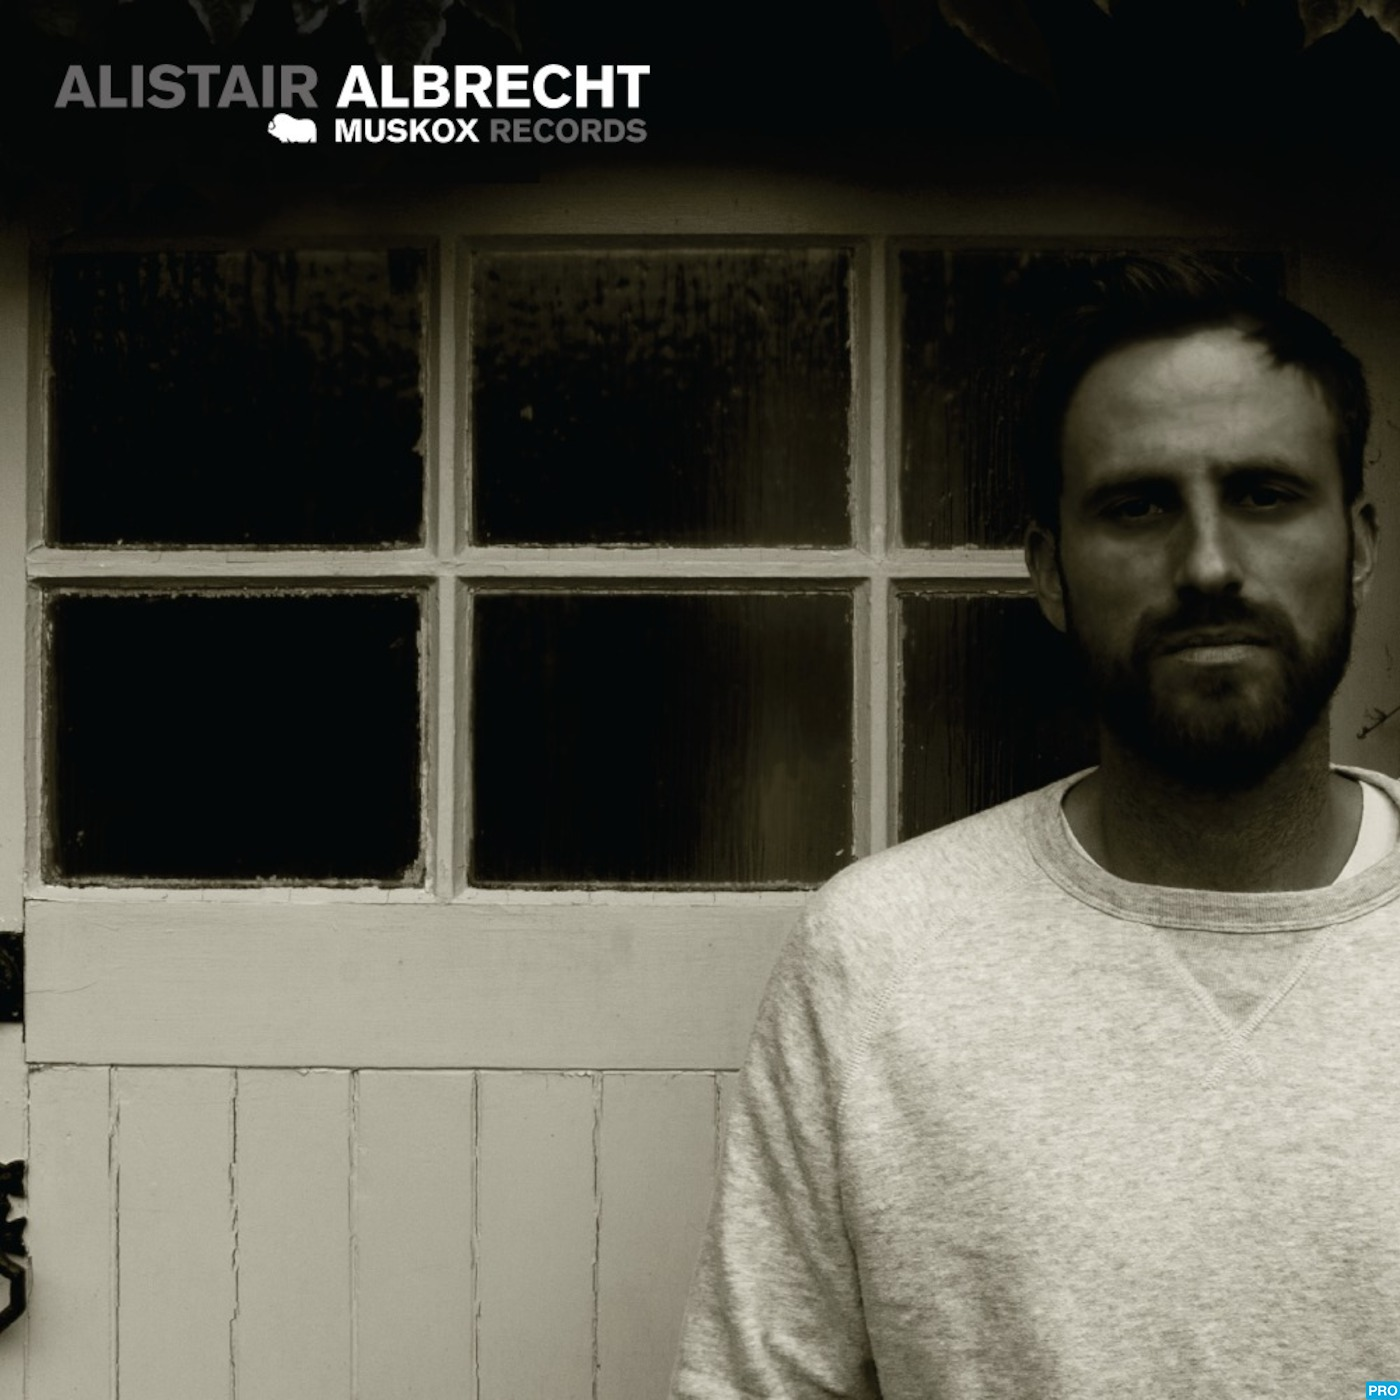 Alistair Albrecht / Muskox Records Podcasts & Guest Mixes